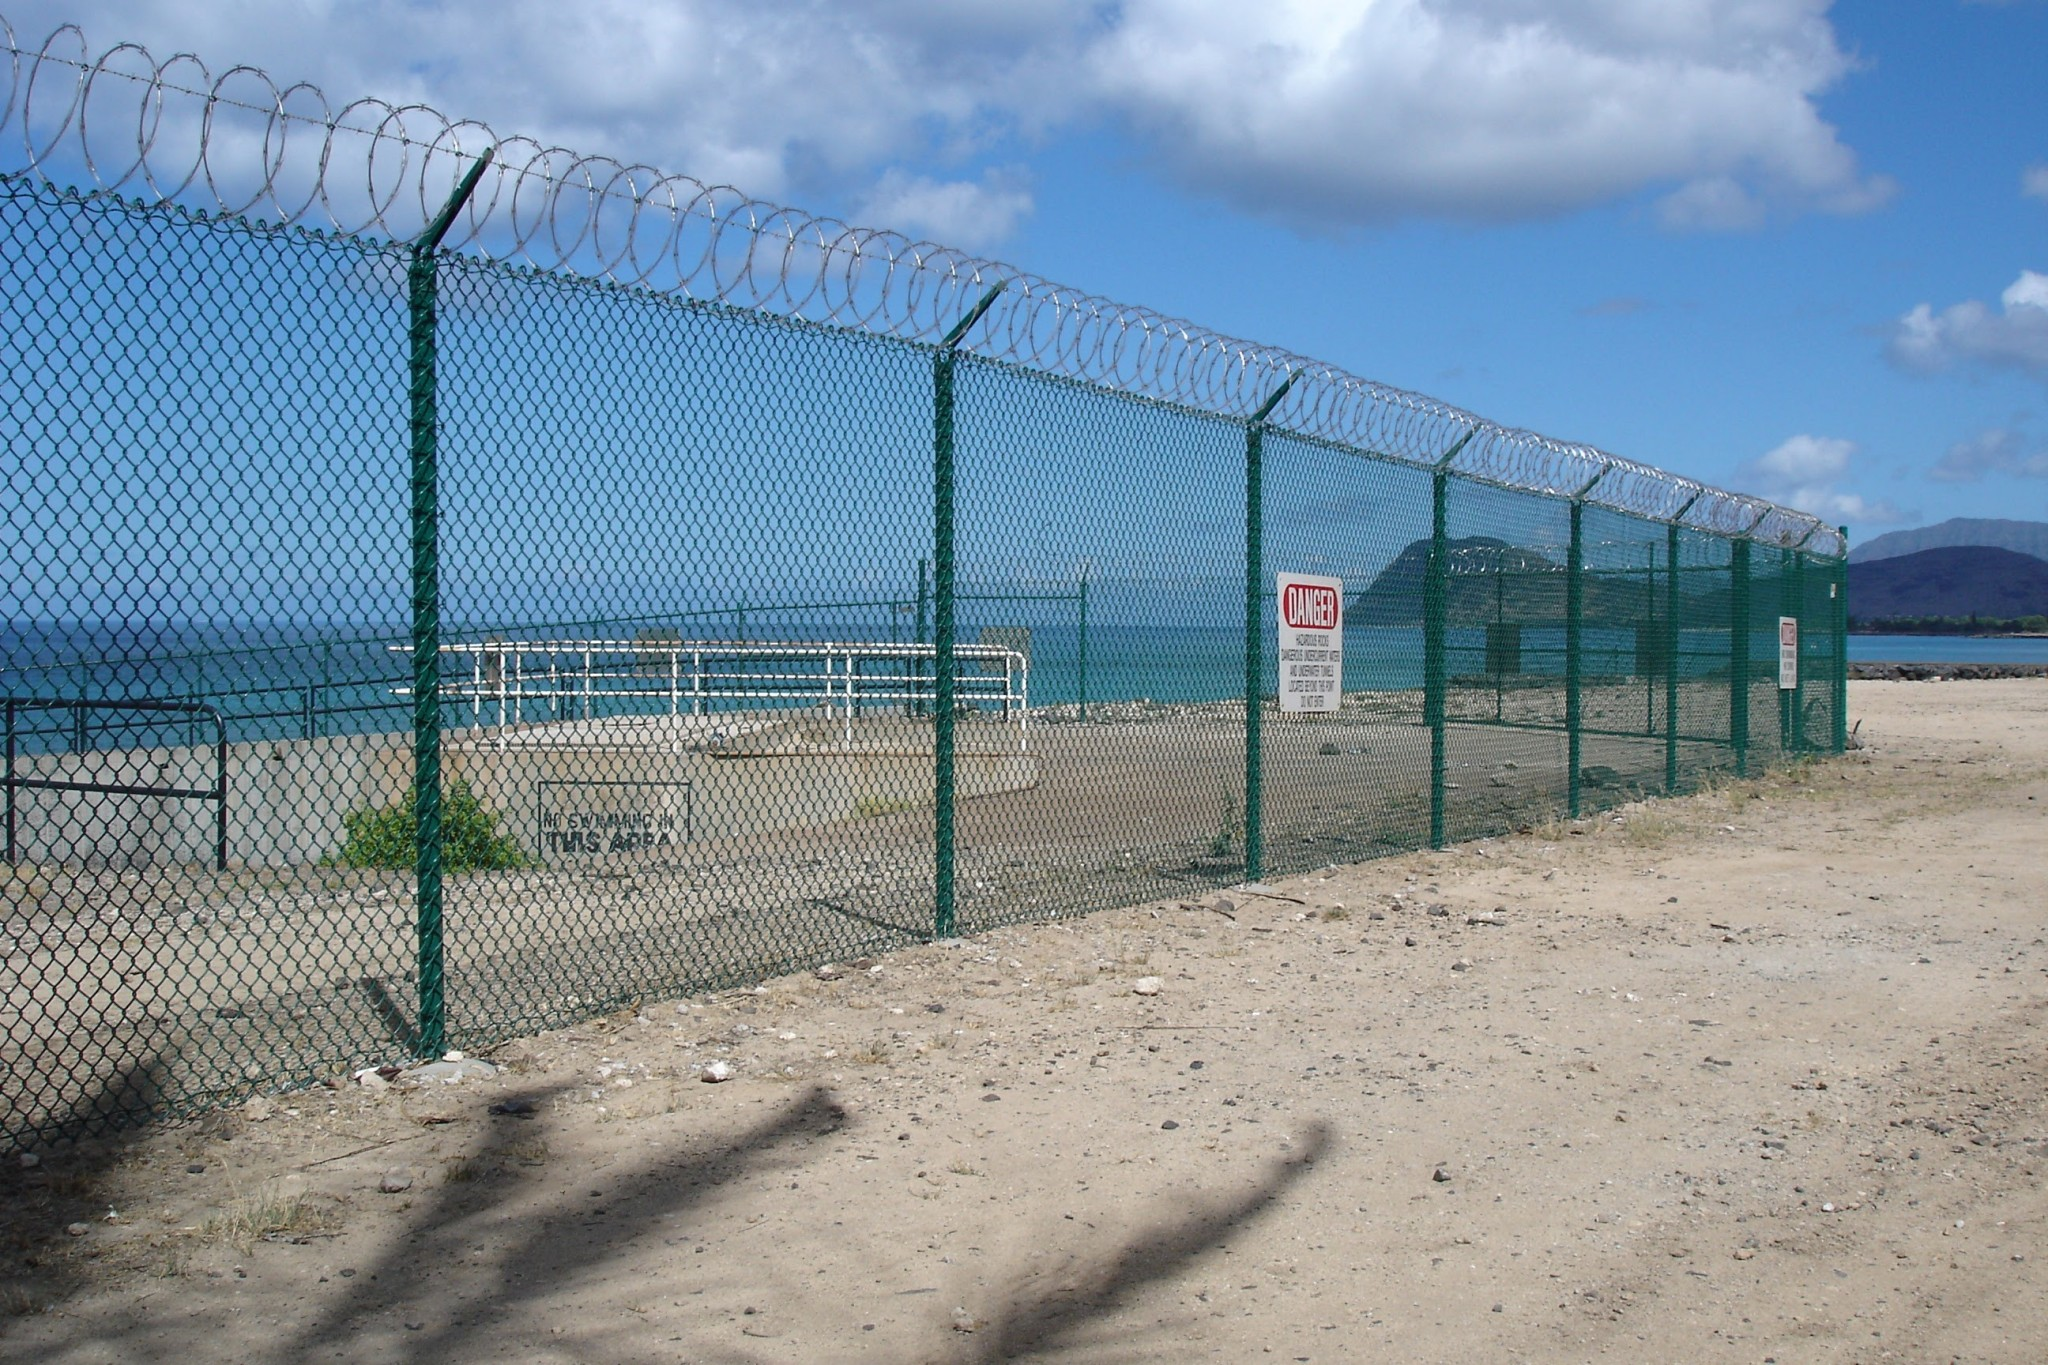 Hawaii Chain Link Fence Barbed Wire - Allied Security Fence